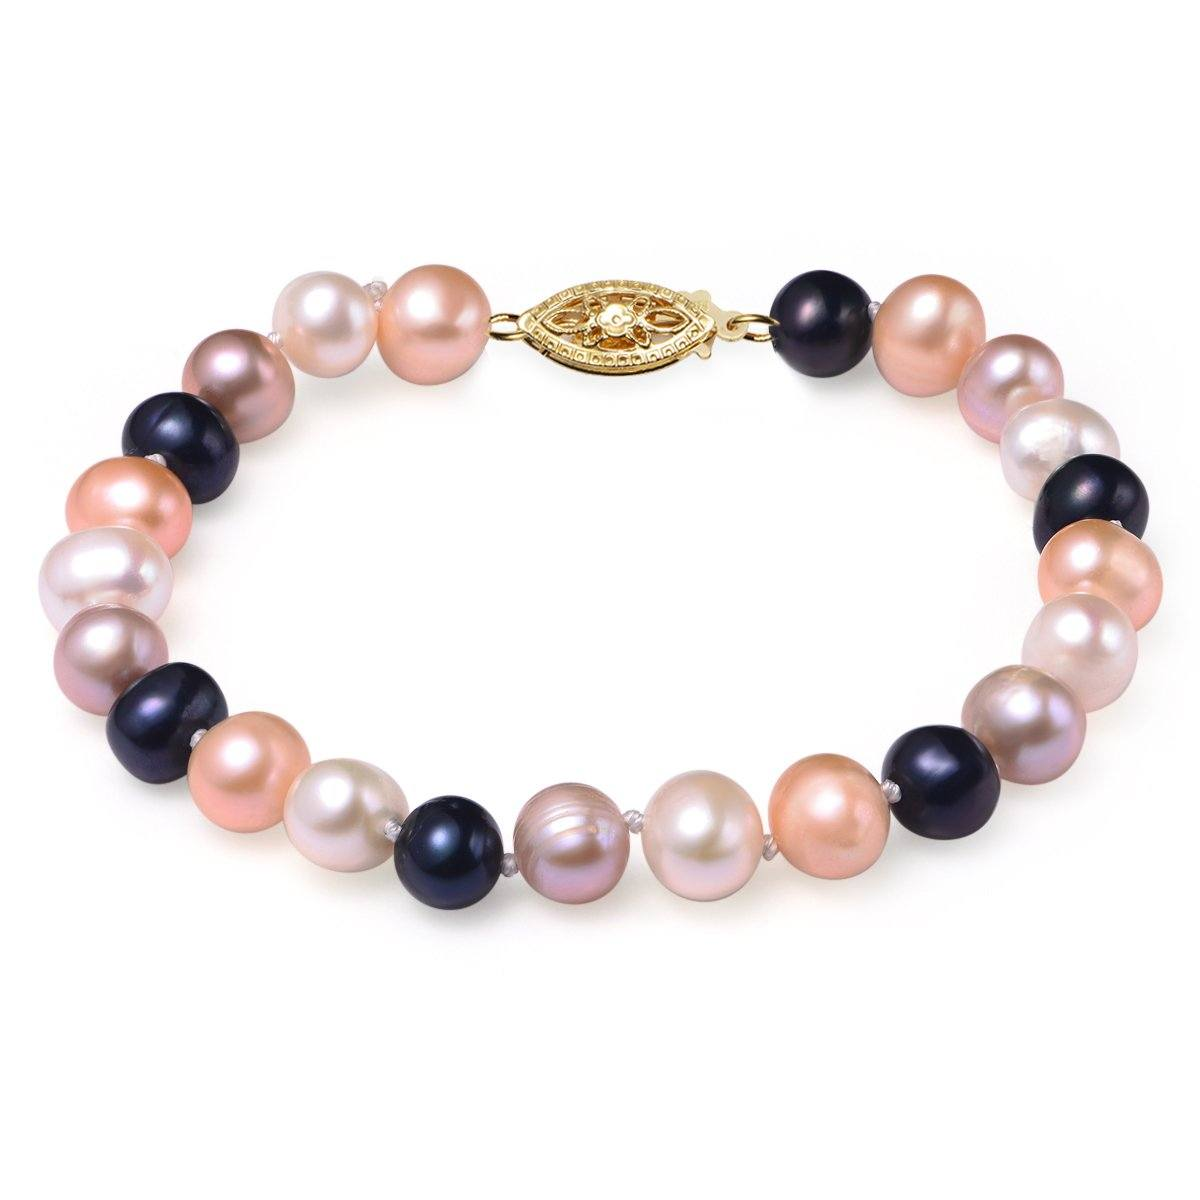 multi colored pearl bracelet 7-8 mm aaa cultured freshwater pearls with 14k solid yellow gold fish hook